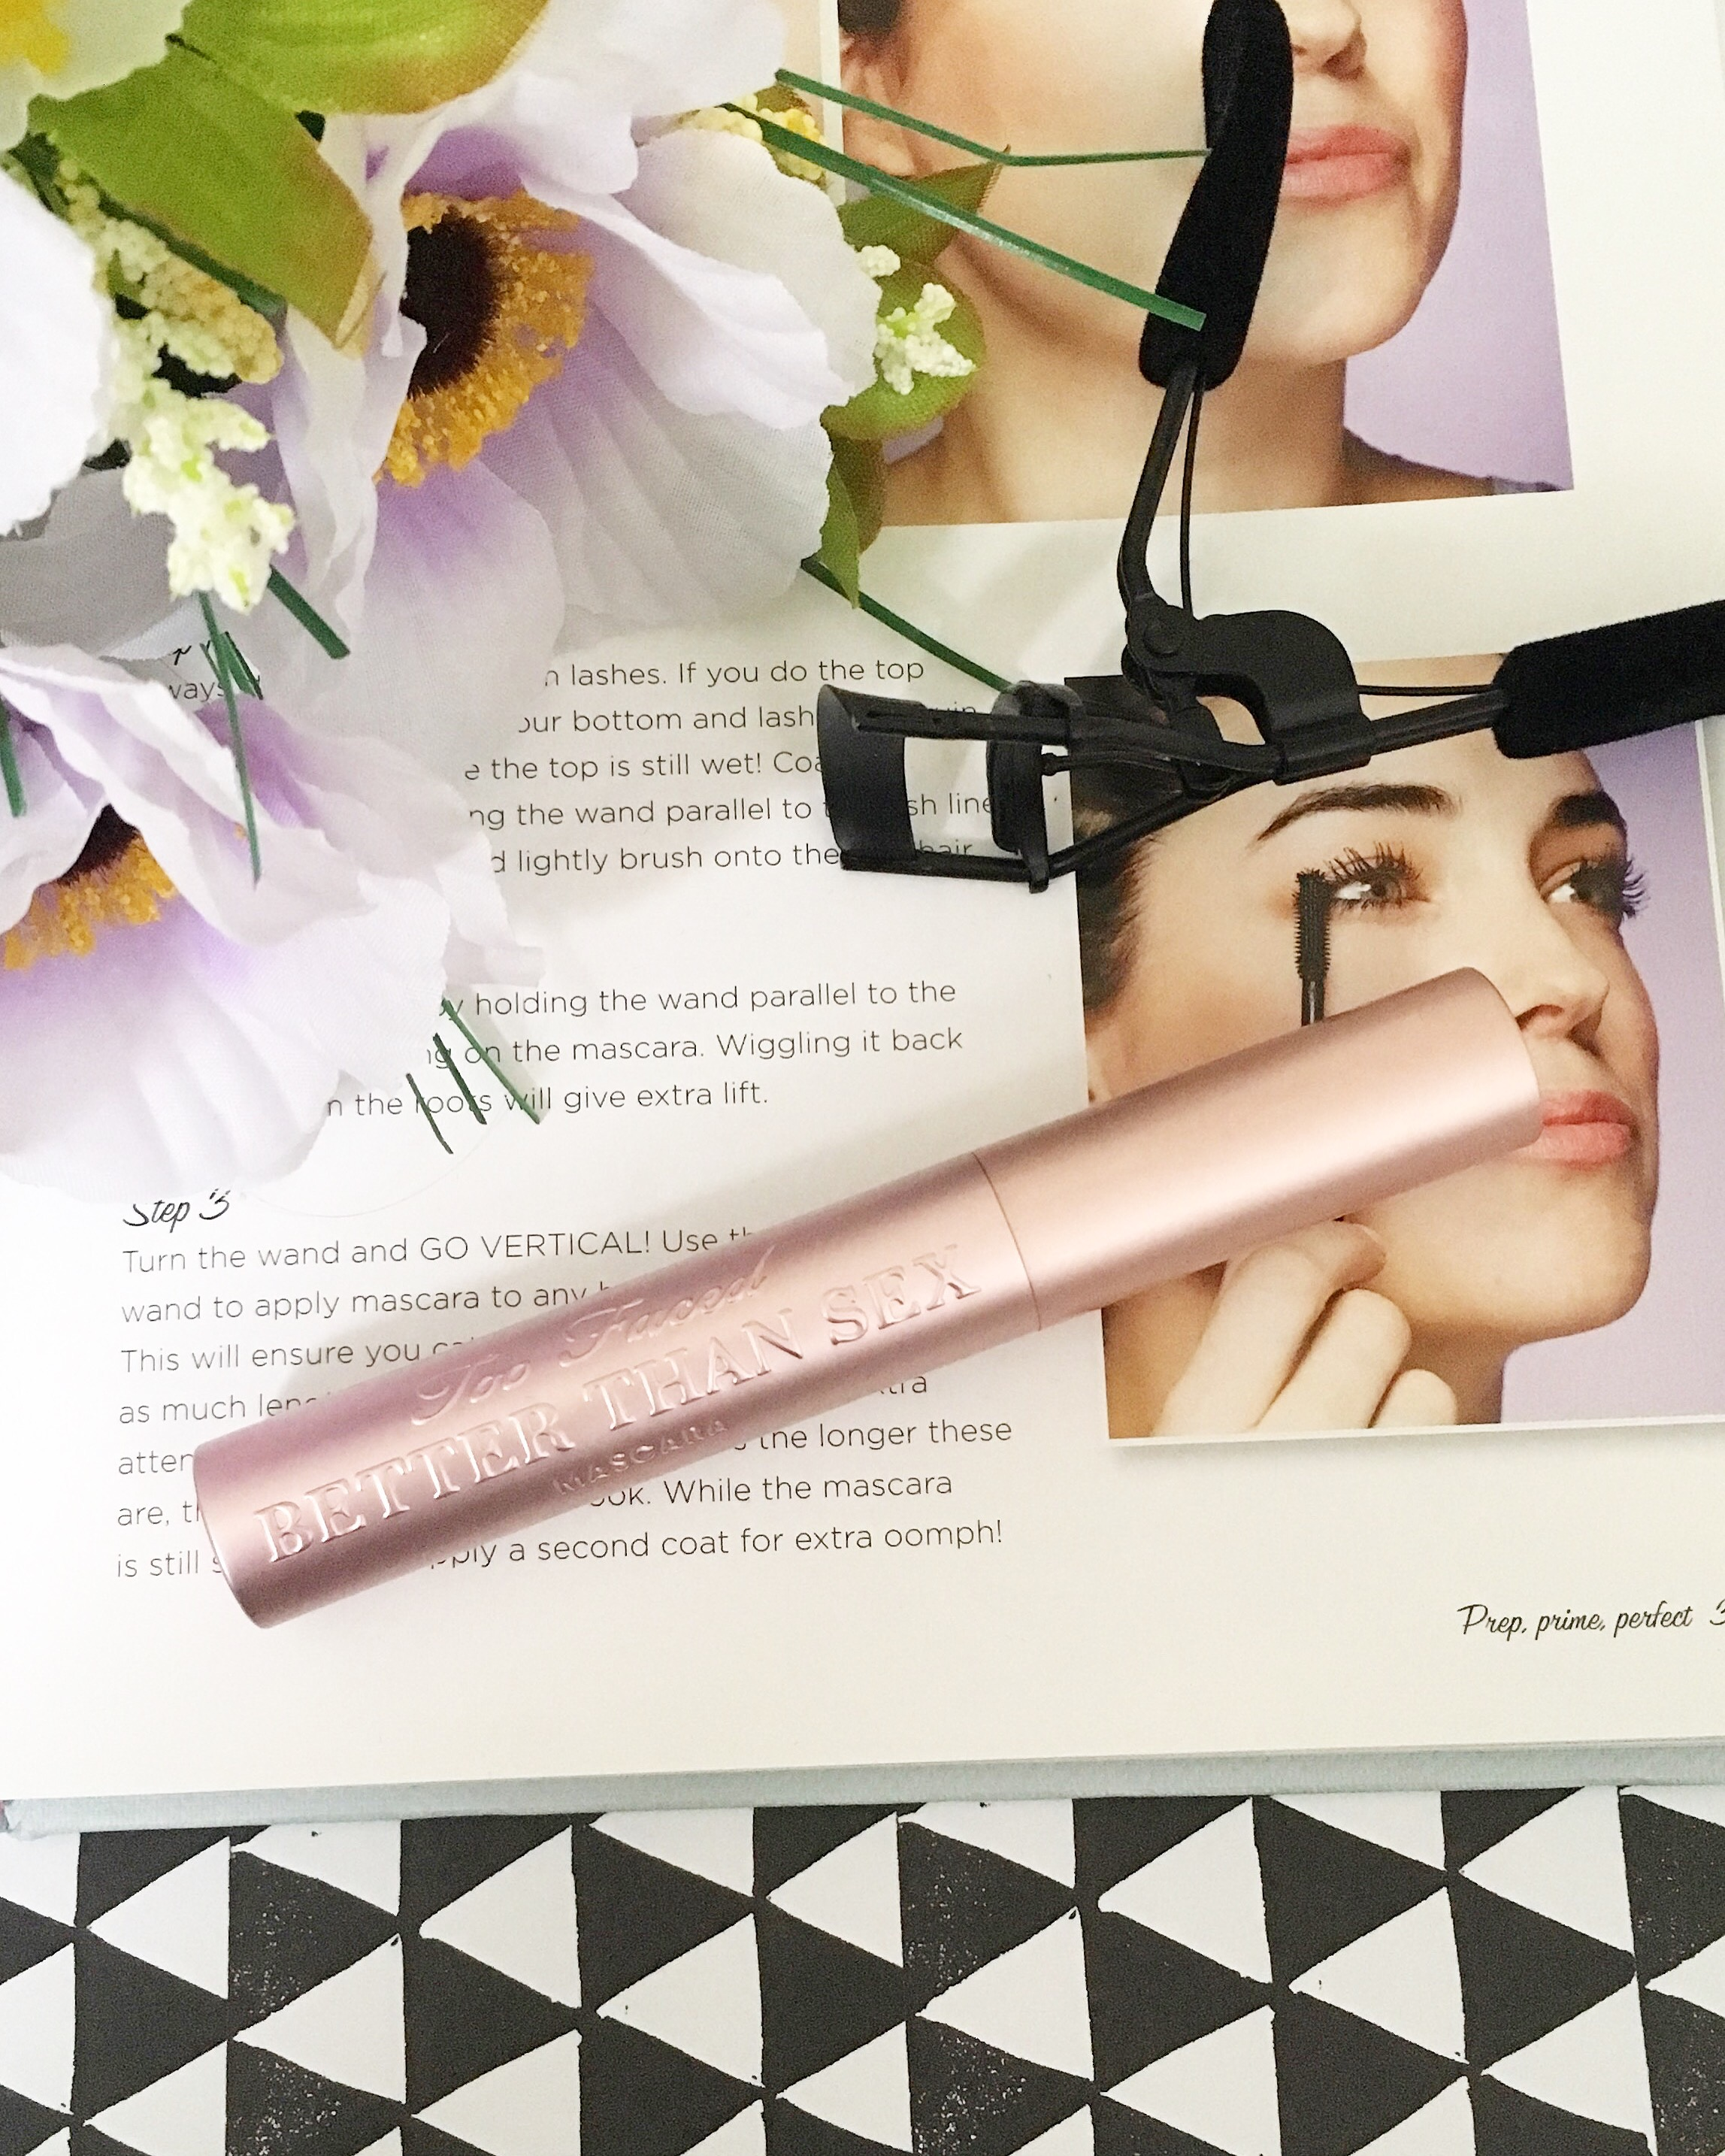 Too-Faced 'Better than Sex' mascara and eyelash curler